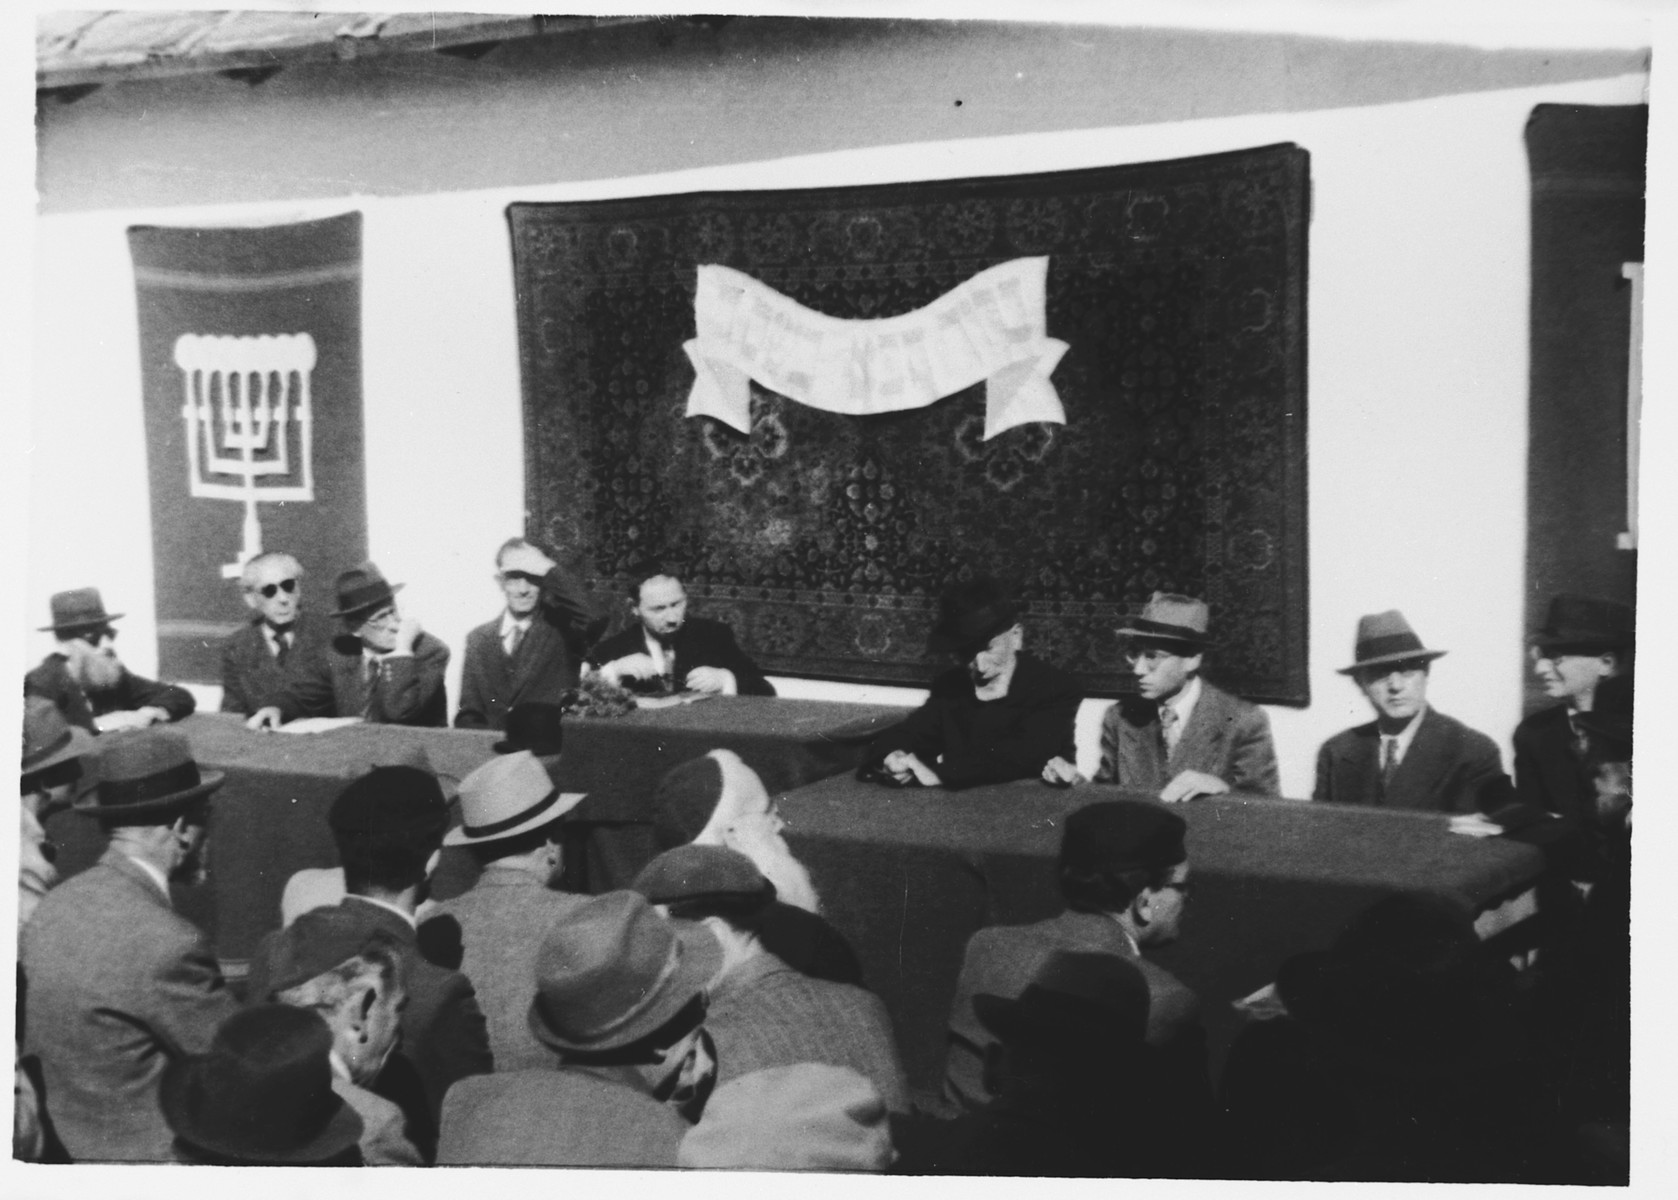 """Internees gather for a meeting in the Ferramonti camp to determine work assignments.  This photograph was taken during a visit to the camp by Rabbi Pacifici.  Rabbi Pacifici is seated in the center.  The banner behind him reads """"Blessed be your coming in the name of the Lord."""""""